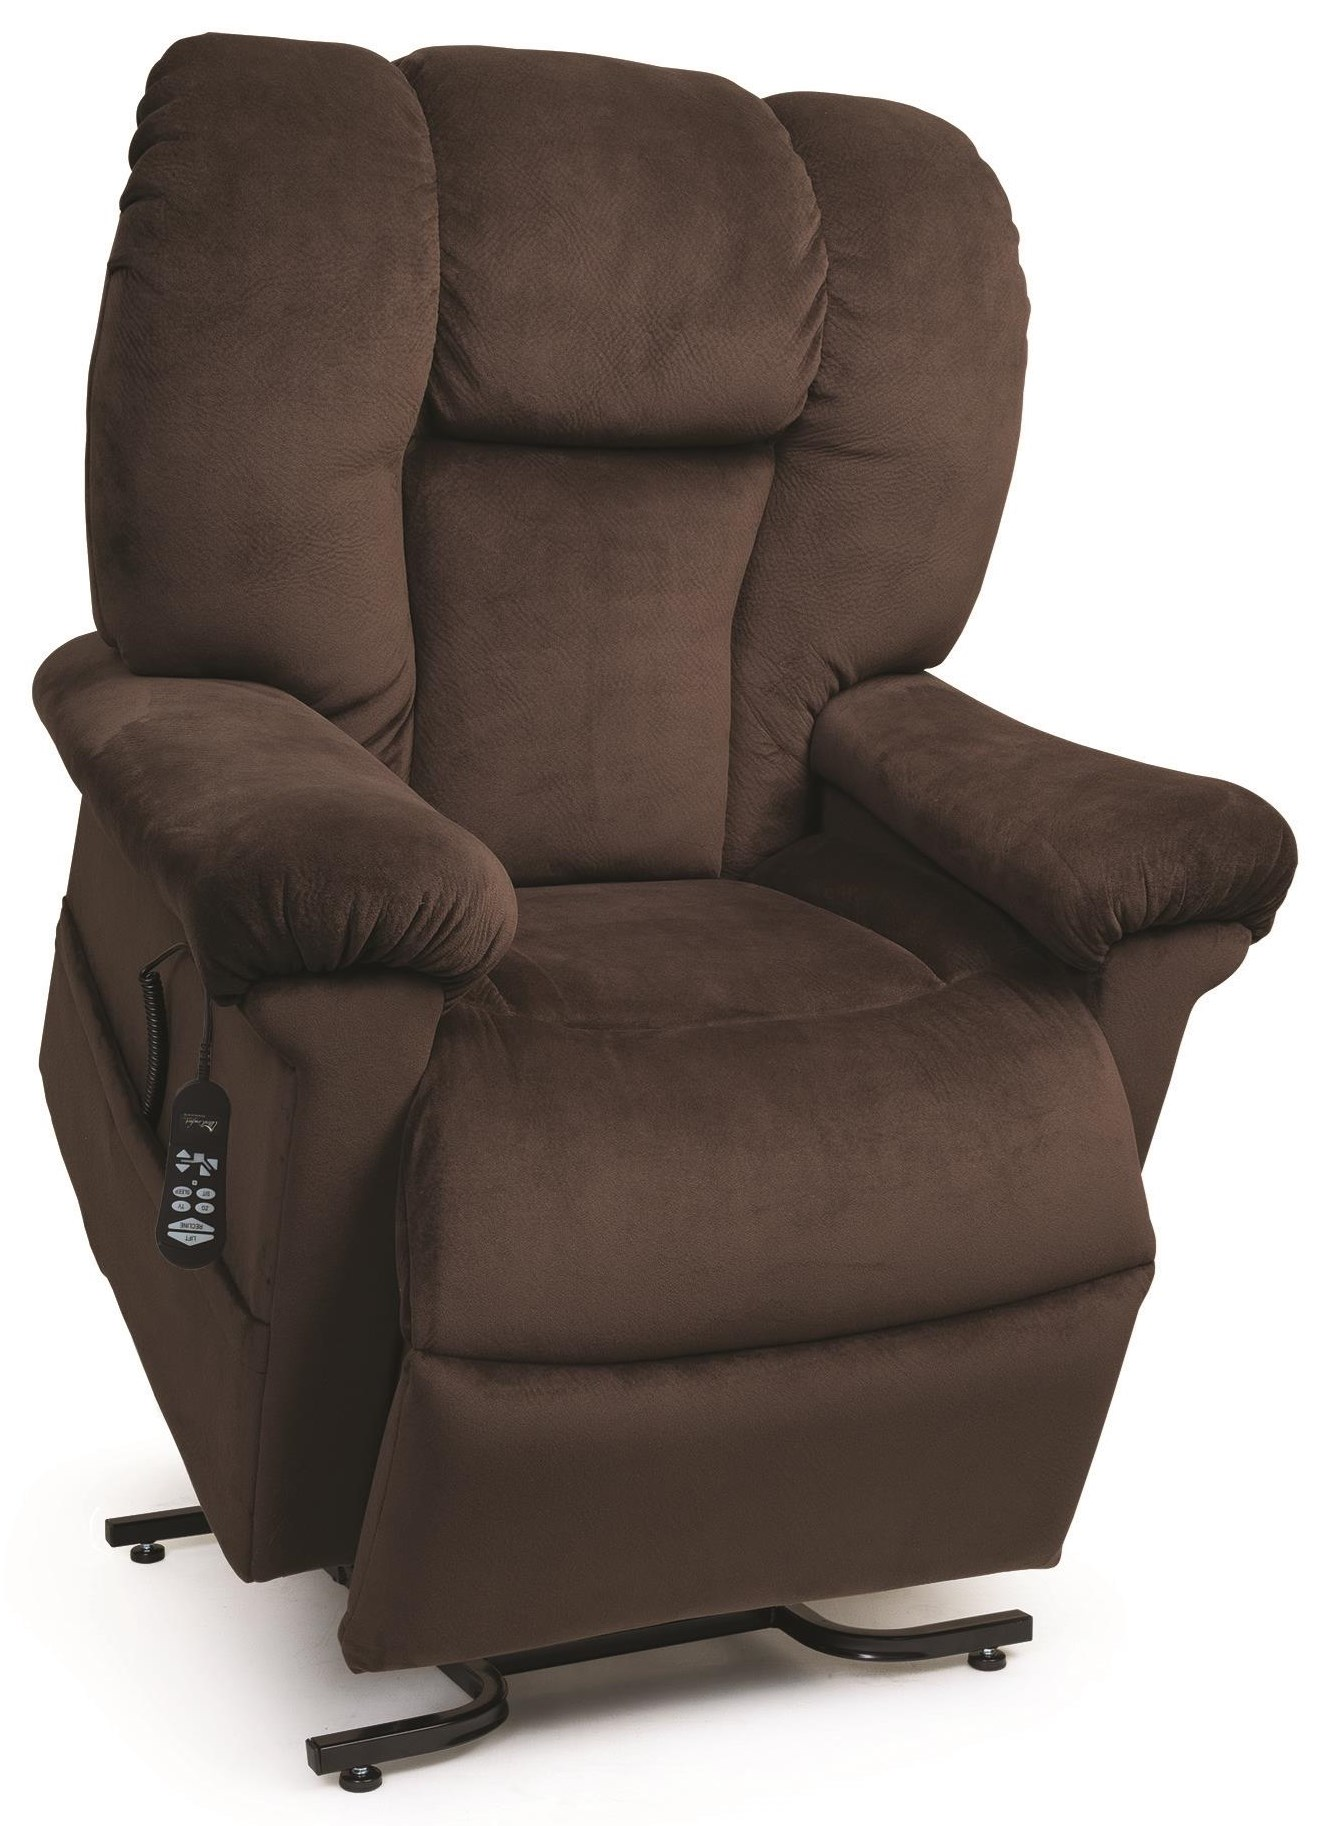 StellarComfort Eclipse 562 Triple Power Lift Recliner  by Ultra at Walker's Furniture